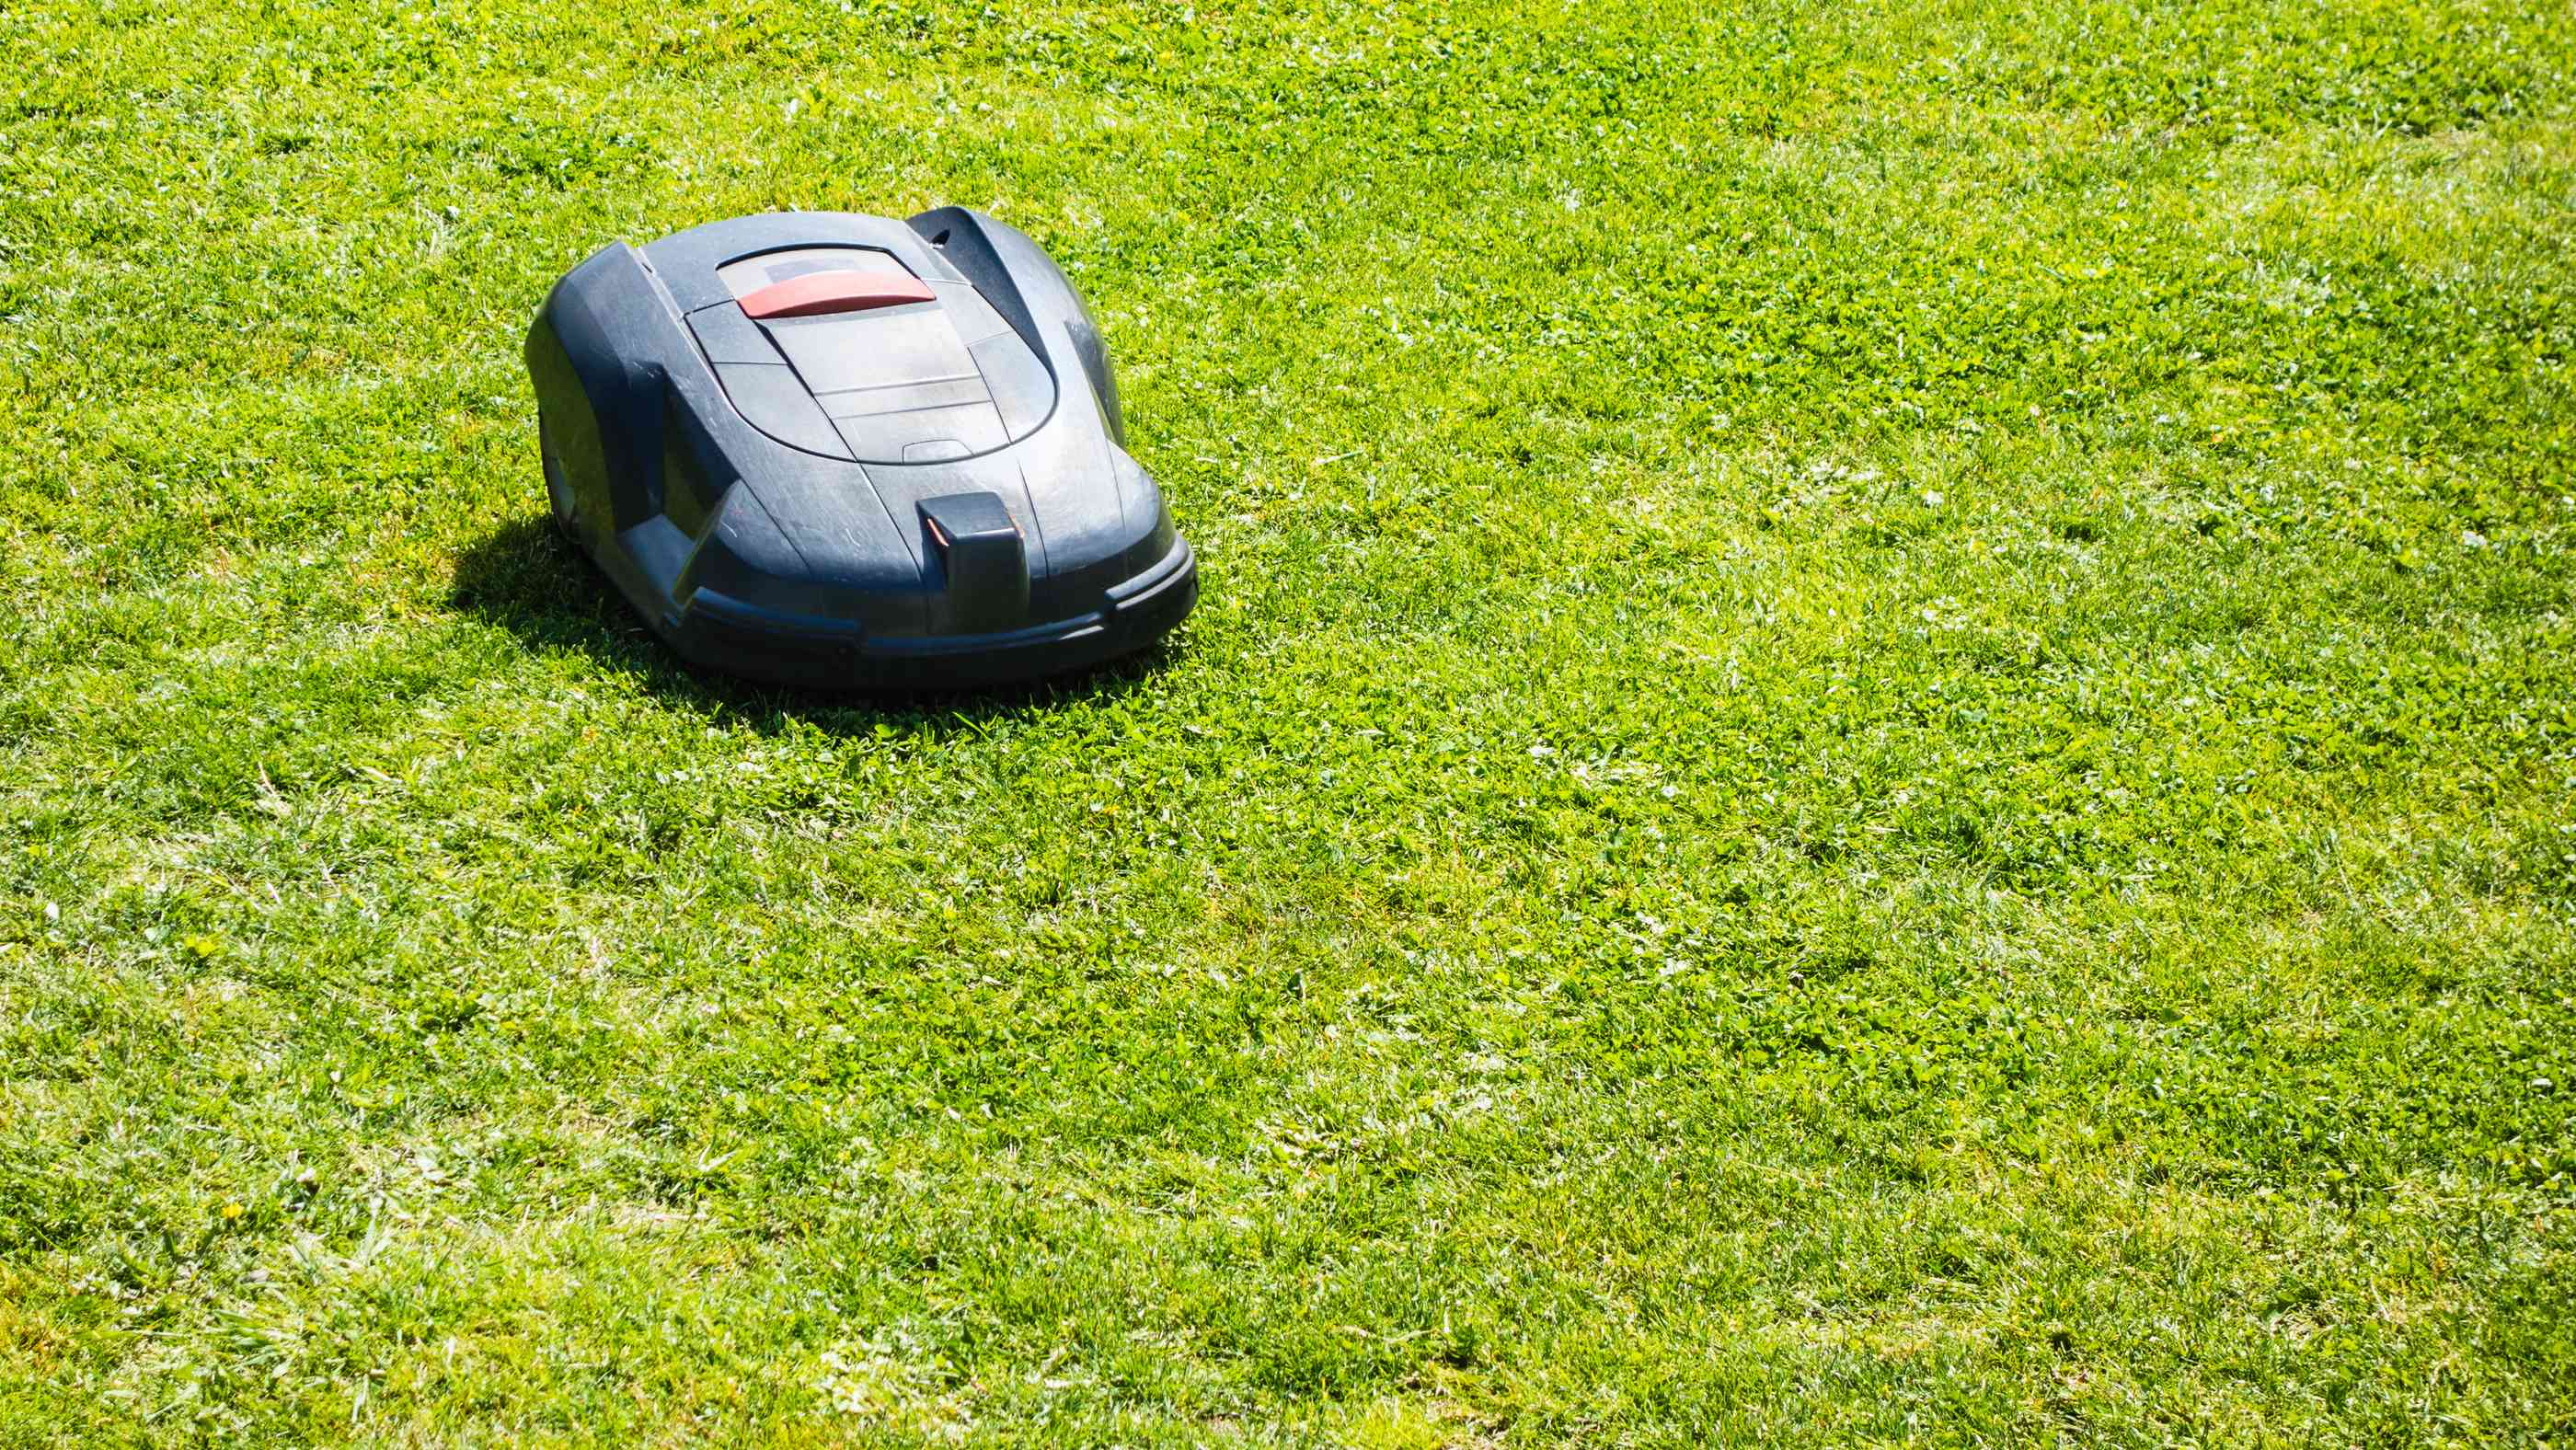 a robotic lawn mower working on a green grass field